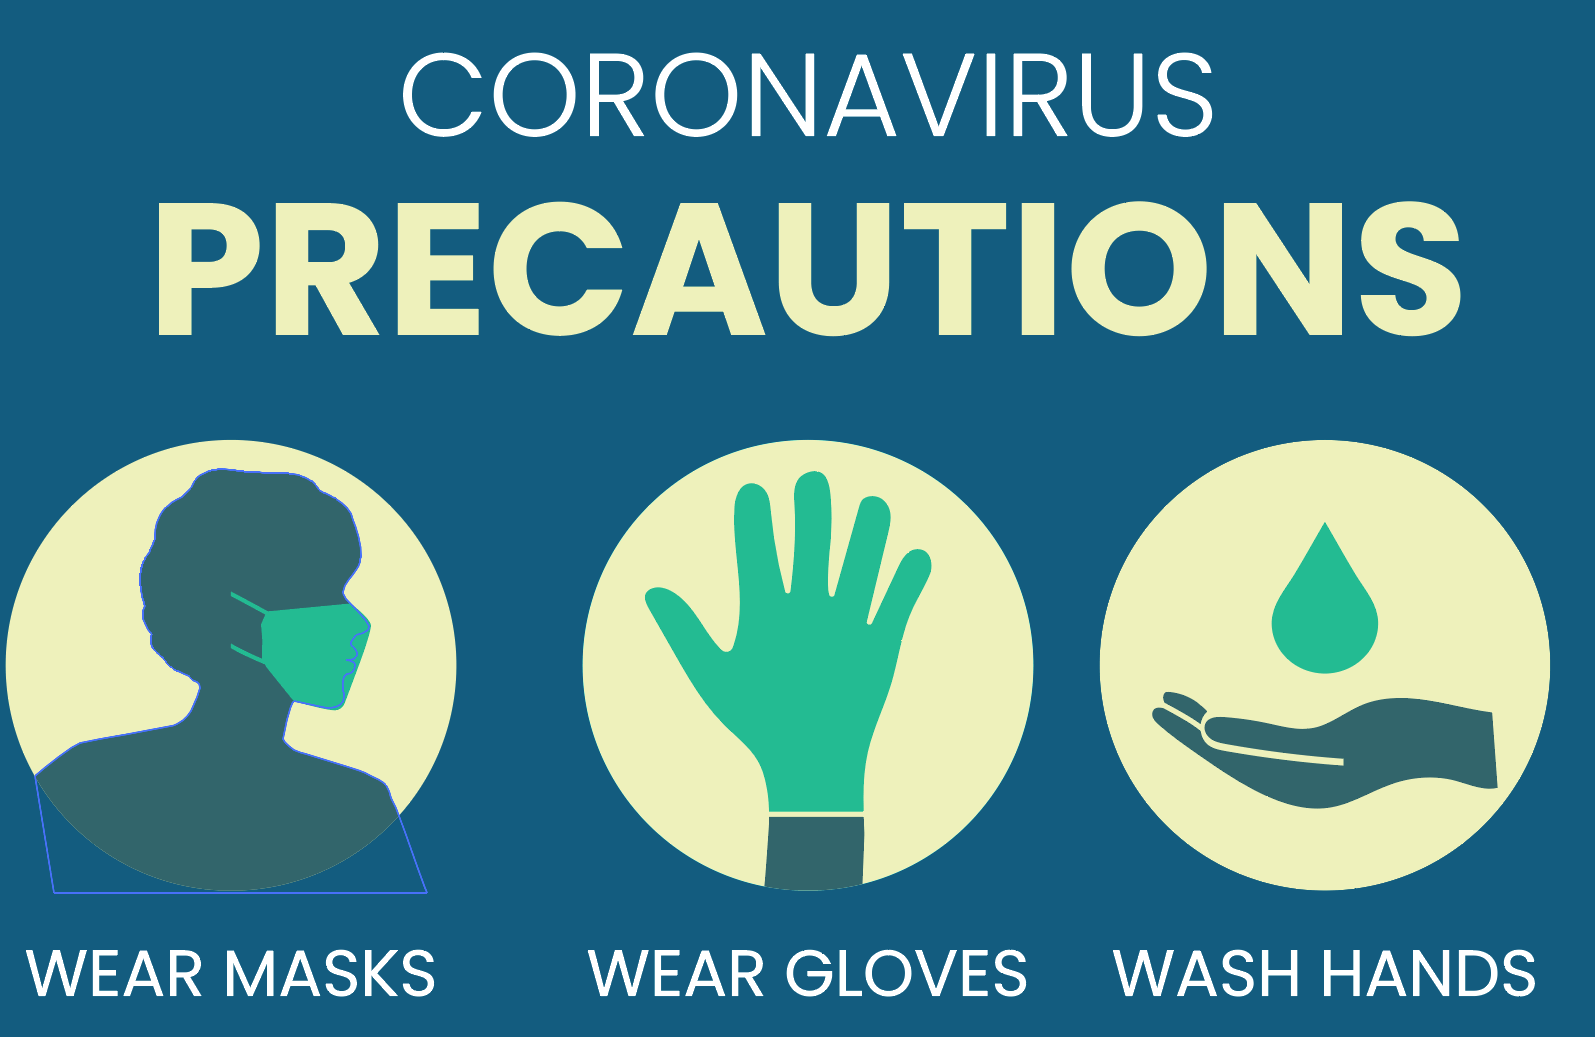 Coronavirus Precautions Wear Masks, Gloves, Wash Hands Illustration